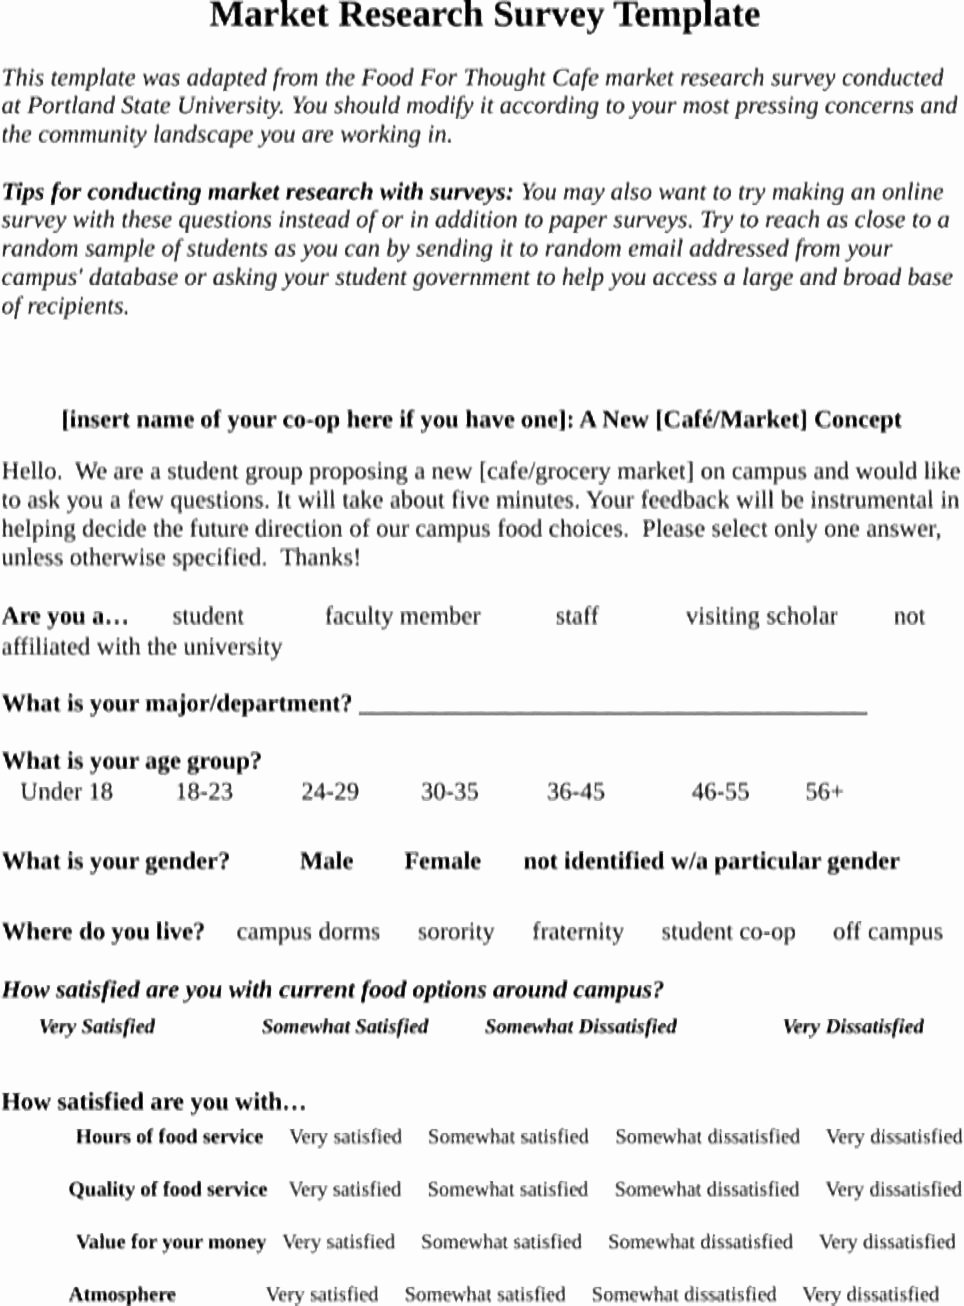 Market Research Survey Template Awesome 23 Survey Examples In Word